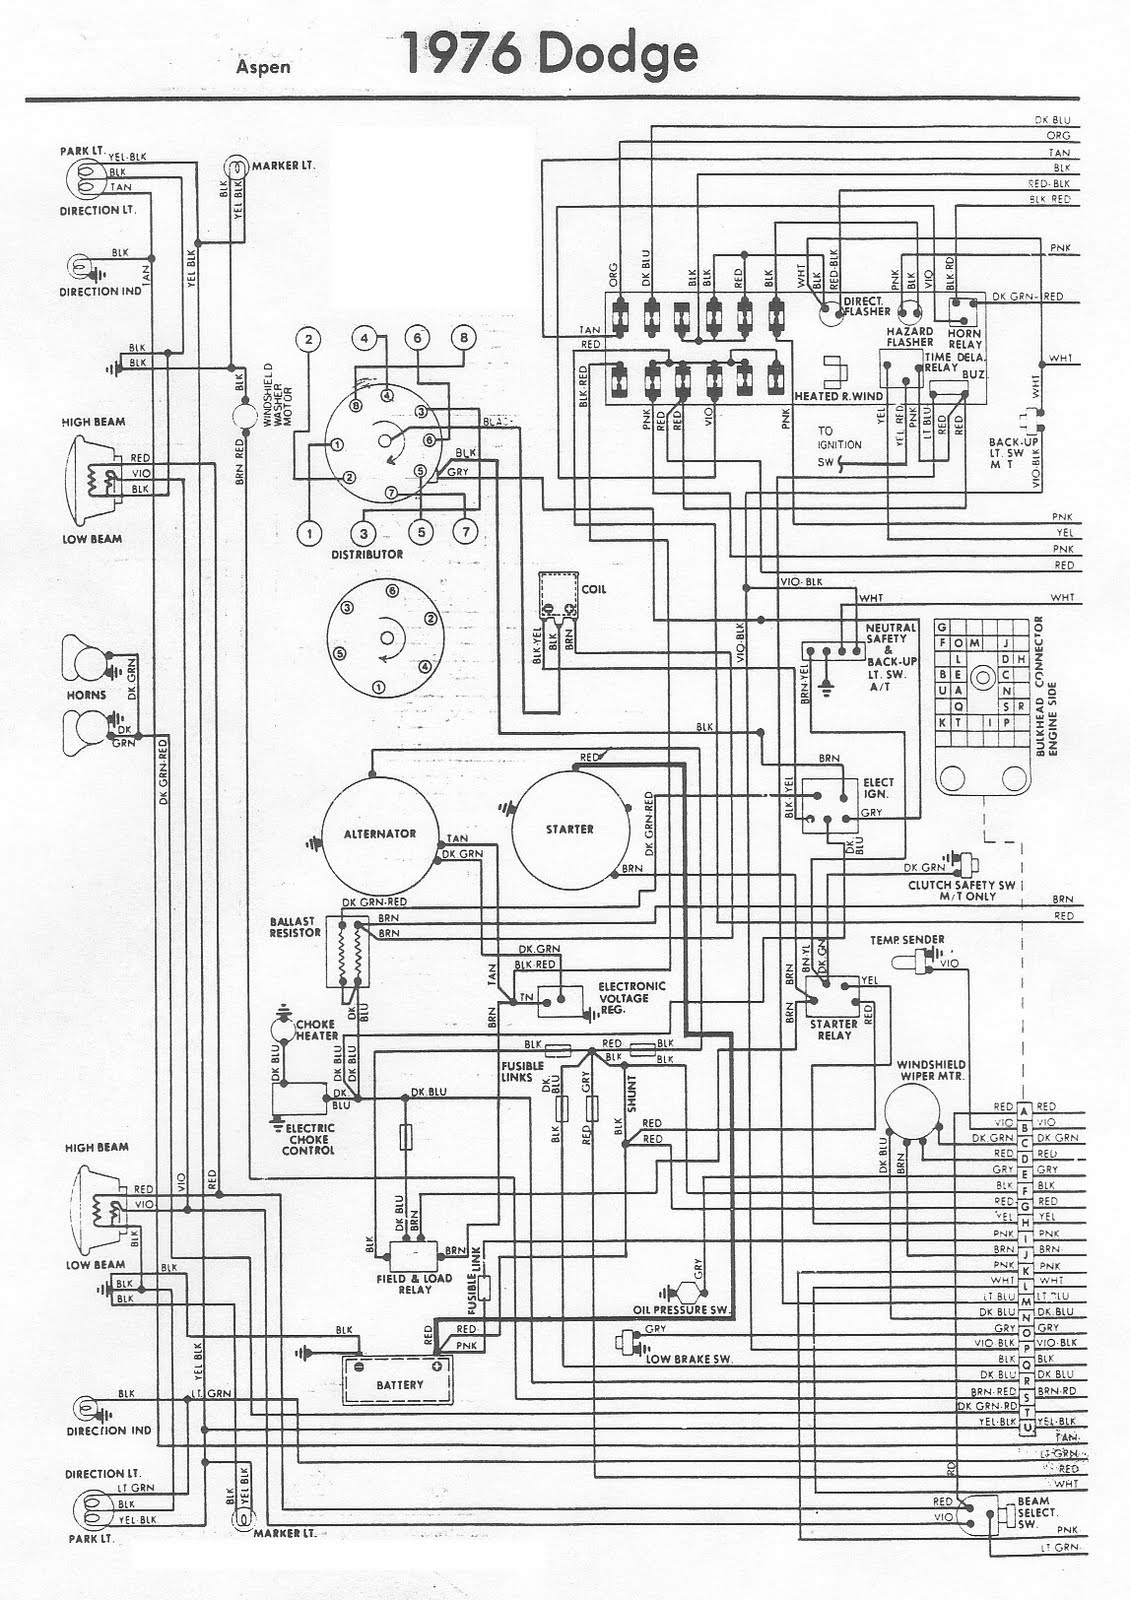 For Electronic Ignition Wiring Diagram For Ih Free Auto Wiring Diagram 1976 Dodge Aspen Engine